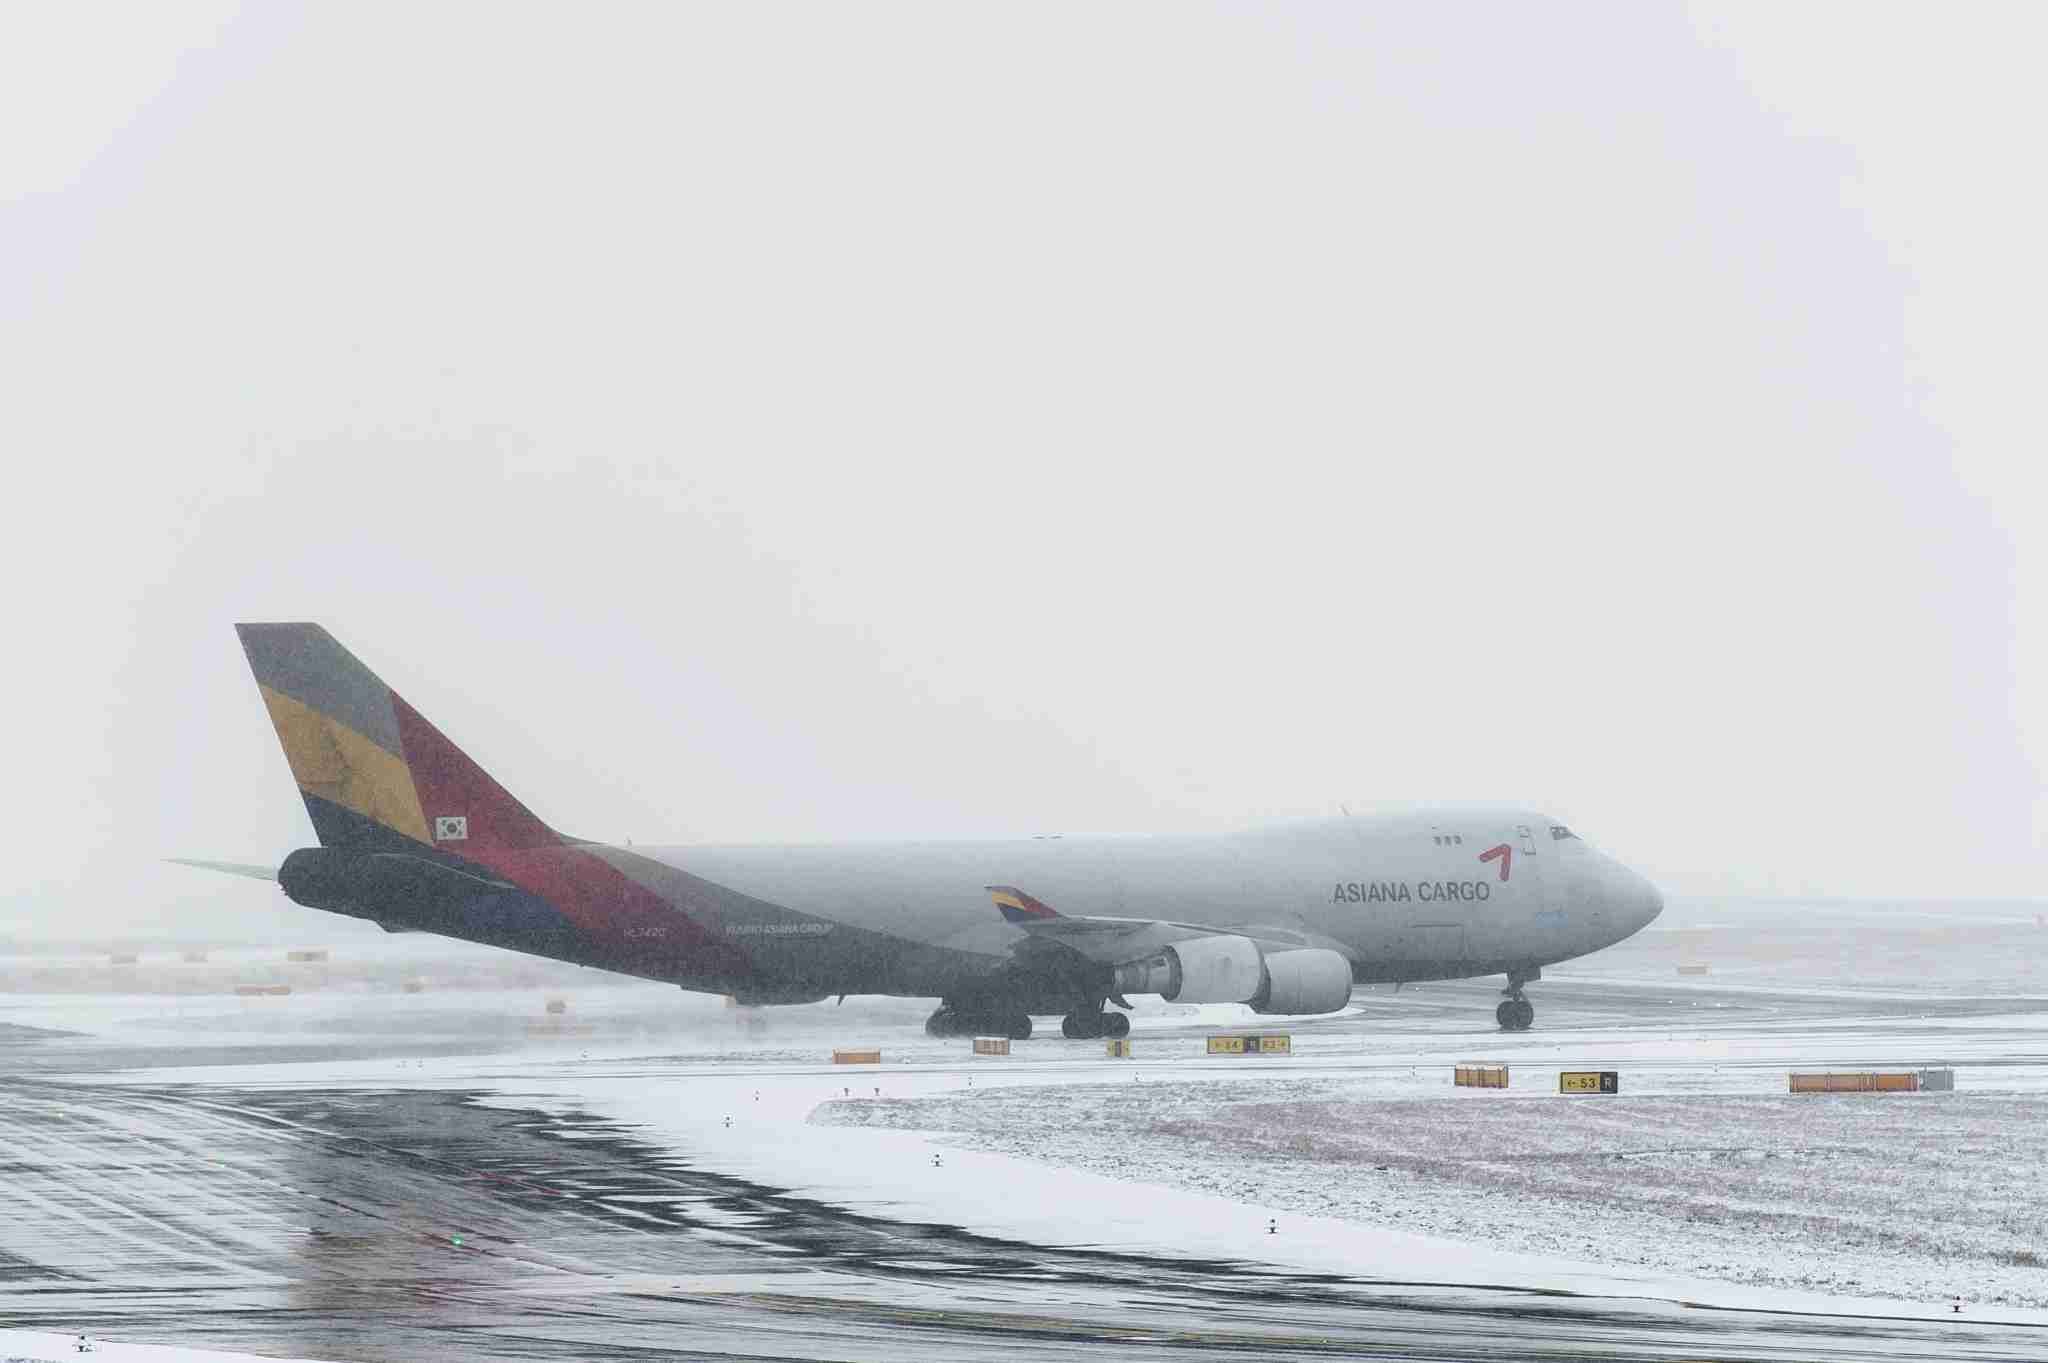 31 January 2019, Hessen, Frankfurt/Main: After de-icing, a Boeing 747 from Asiana Cargo rolls to the runway at Frankfurt Airport. Light snowfall impairs visibility. Photo: Silas Stein/dpa (Photo by Silas Stein/picture alliance via Getty Images)